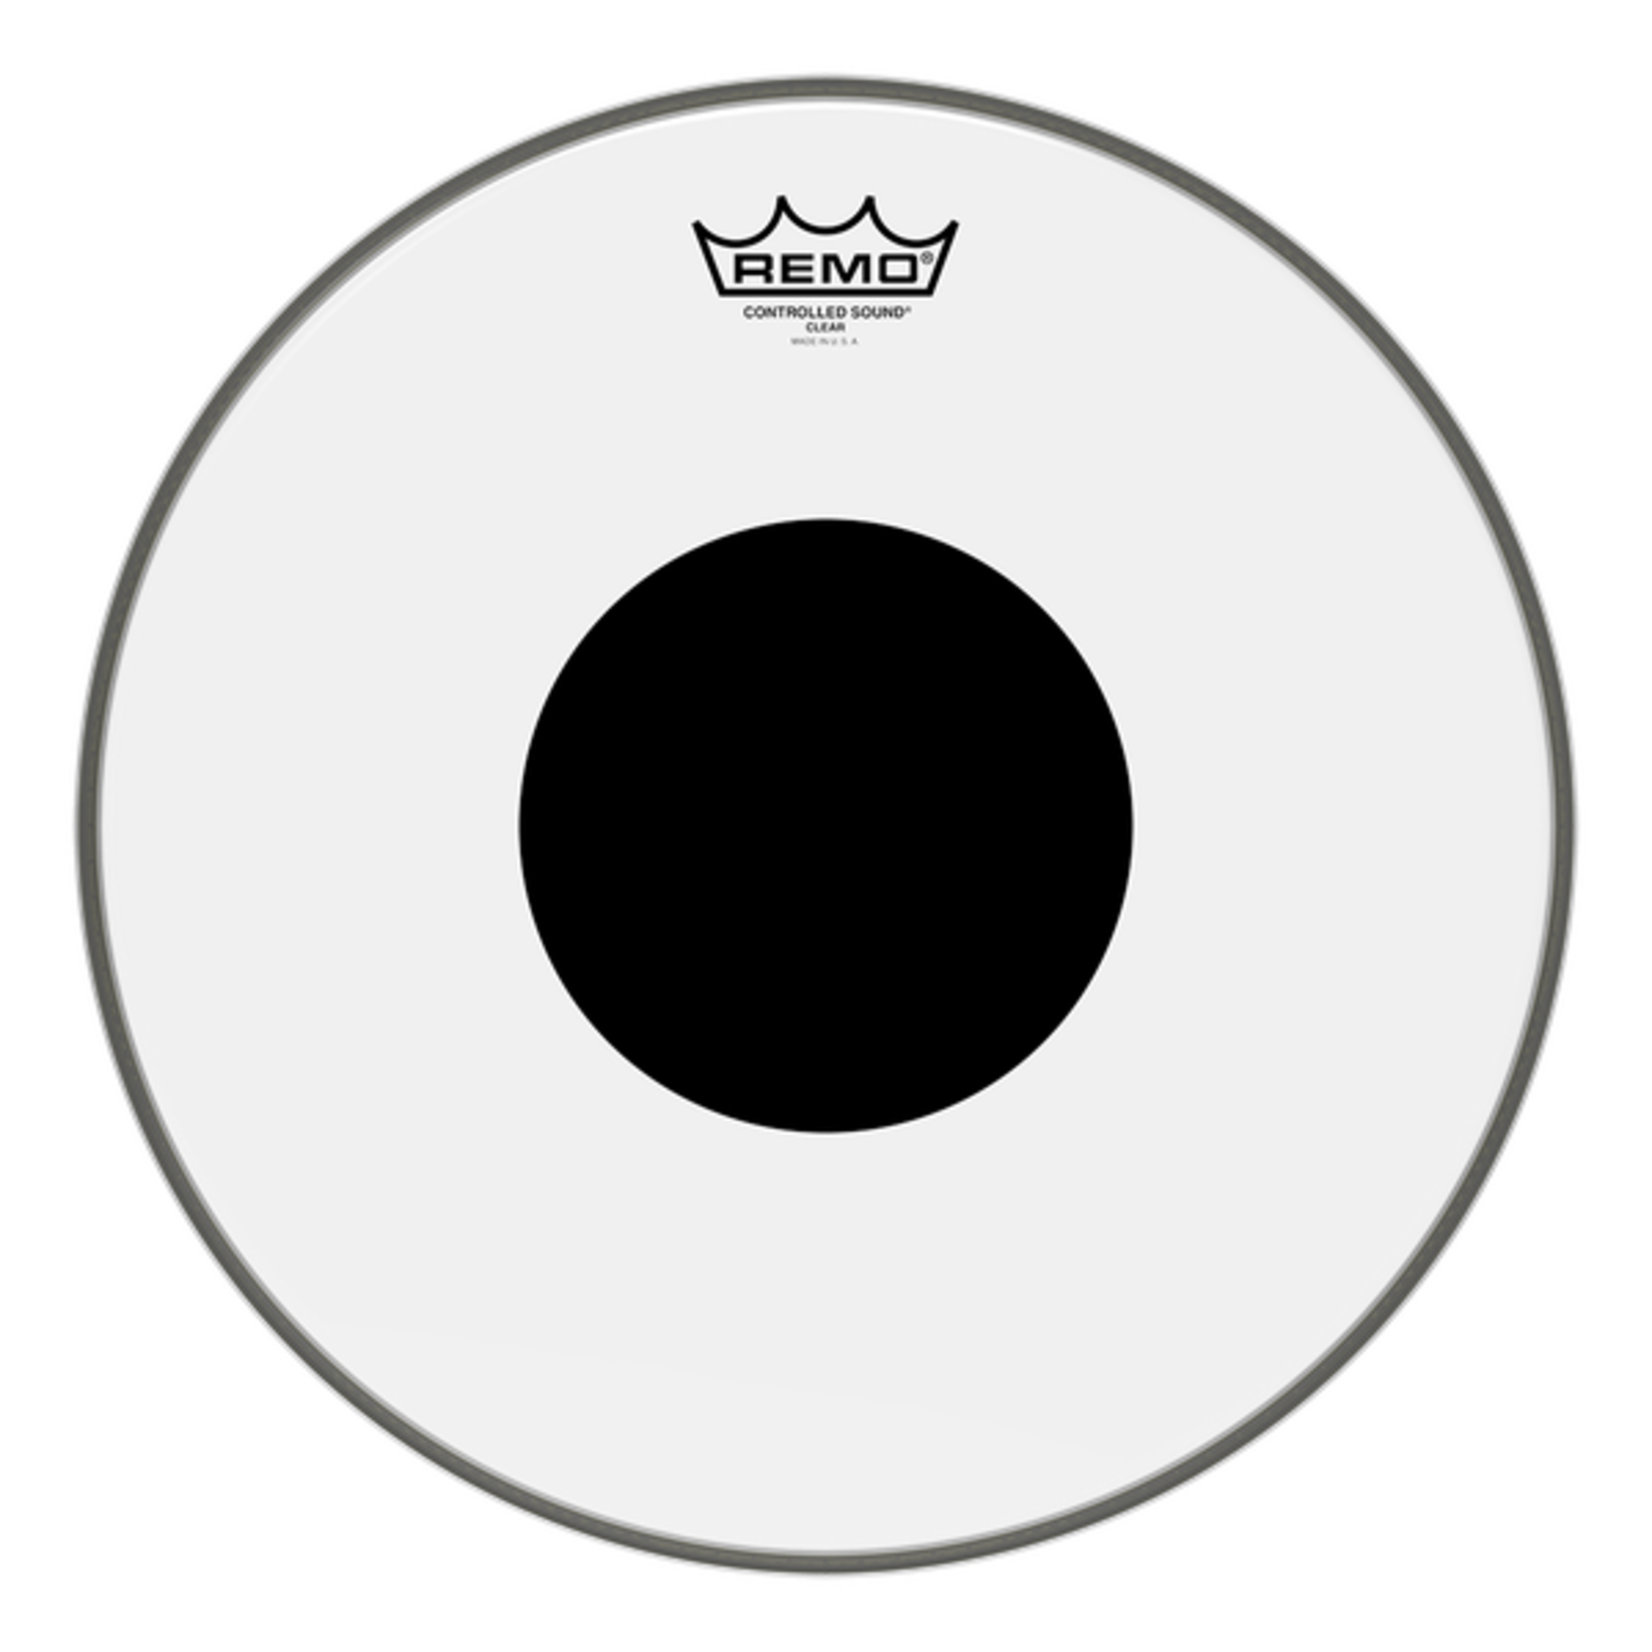 Remo Remo Smooth White Controlled Sound Black Dot on Top Bass Drum